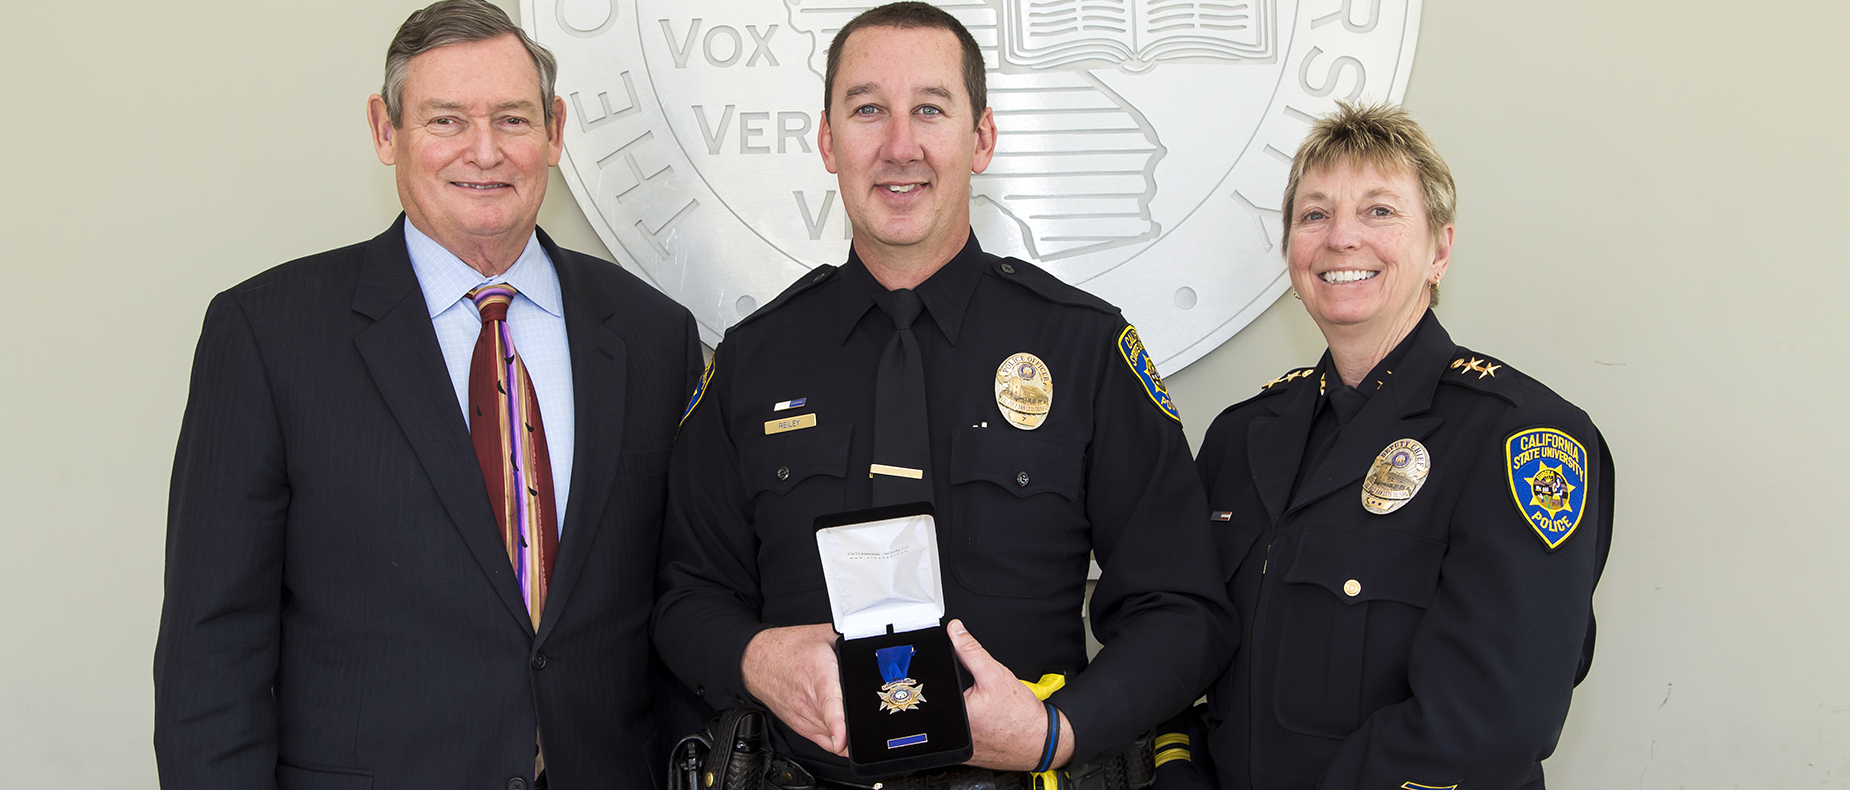 Officer Chad Reiley receives the inaugural CSU lifesaving medal